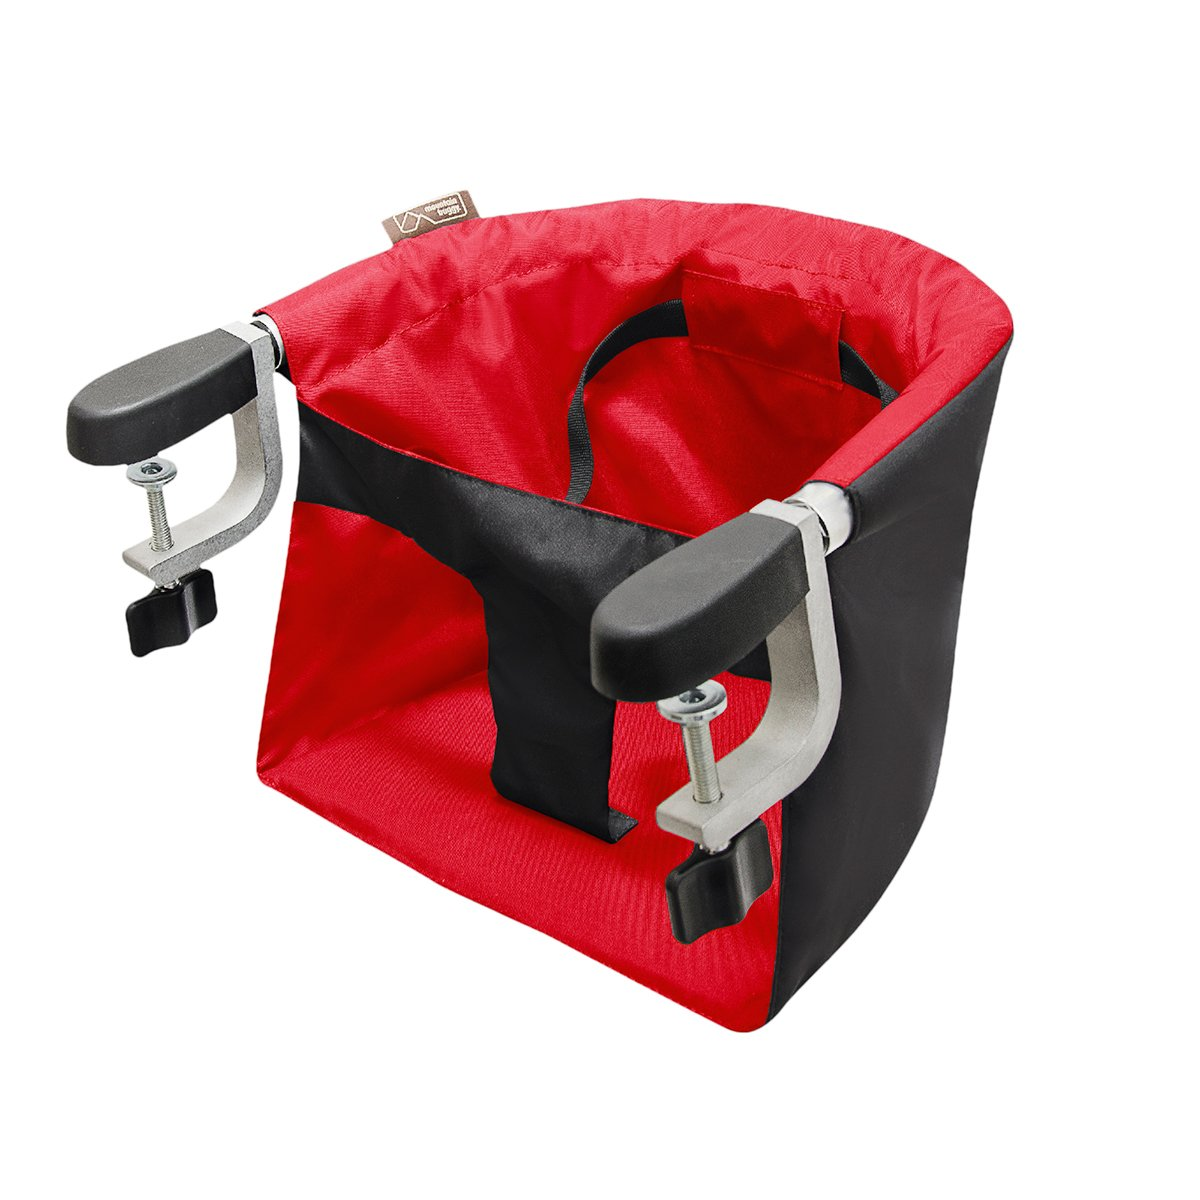 Mountain Buggy Pod Clip-on Highchair, Chili, 1 Pack POD-V2-11